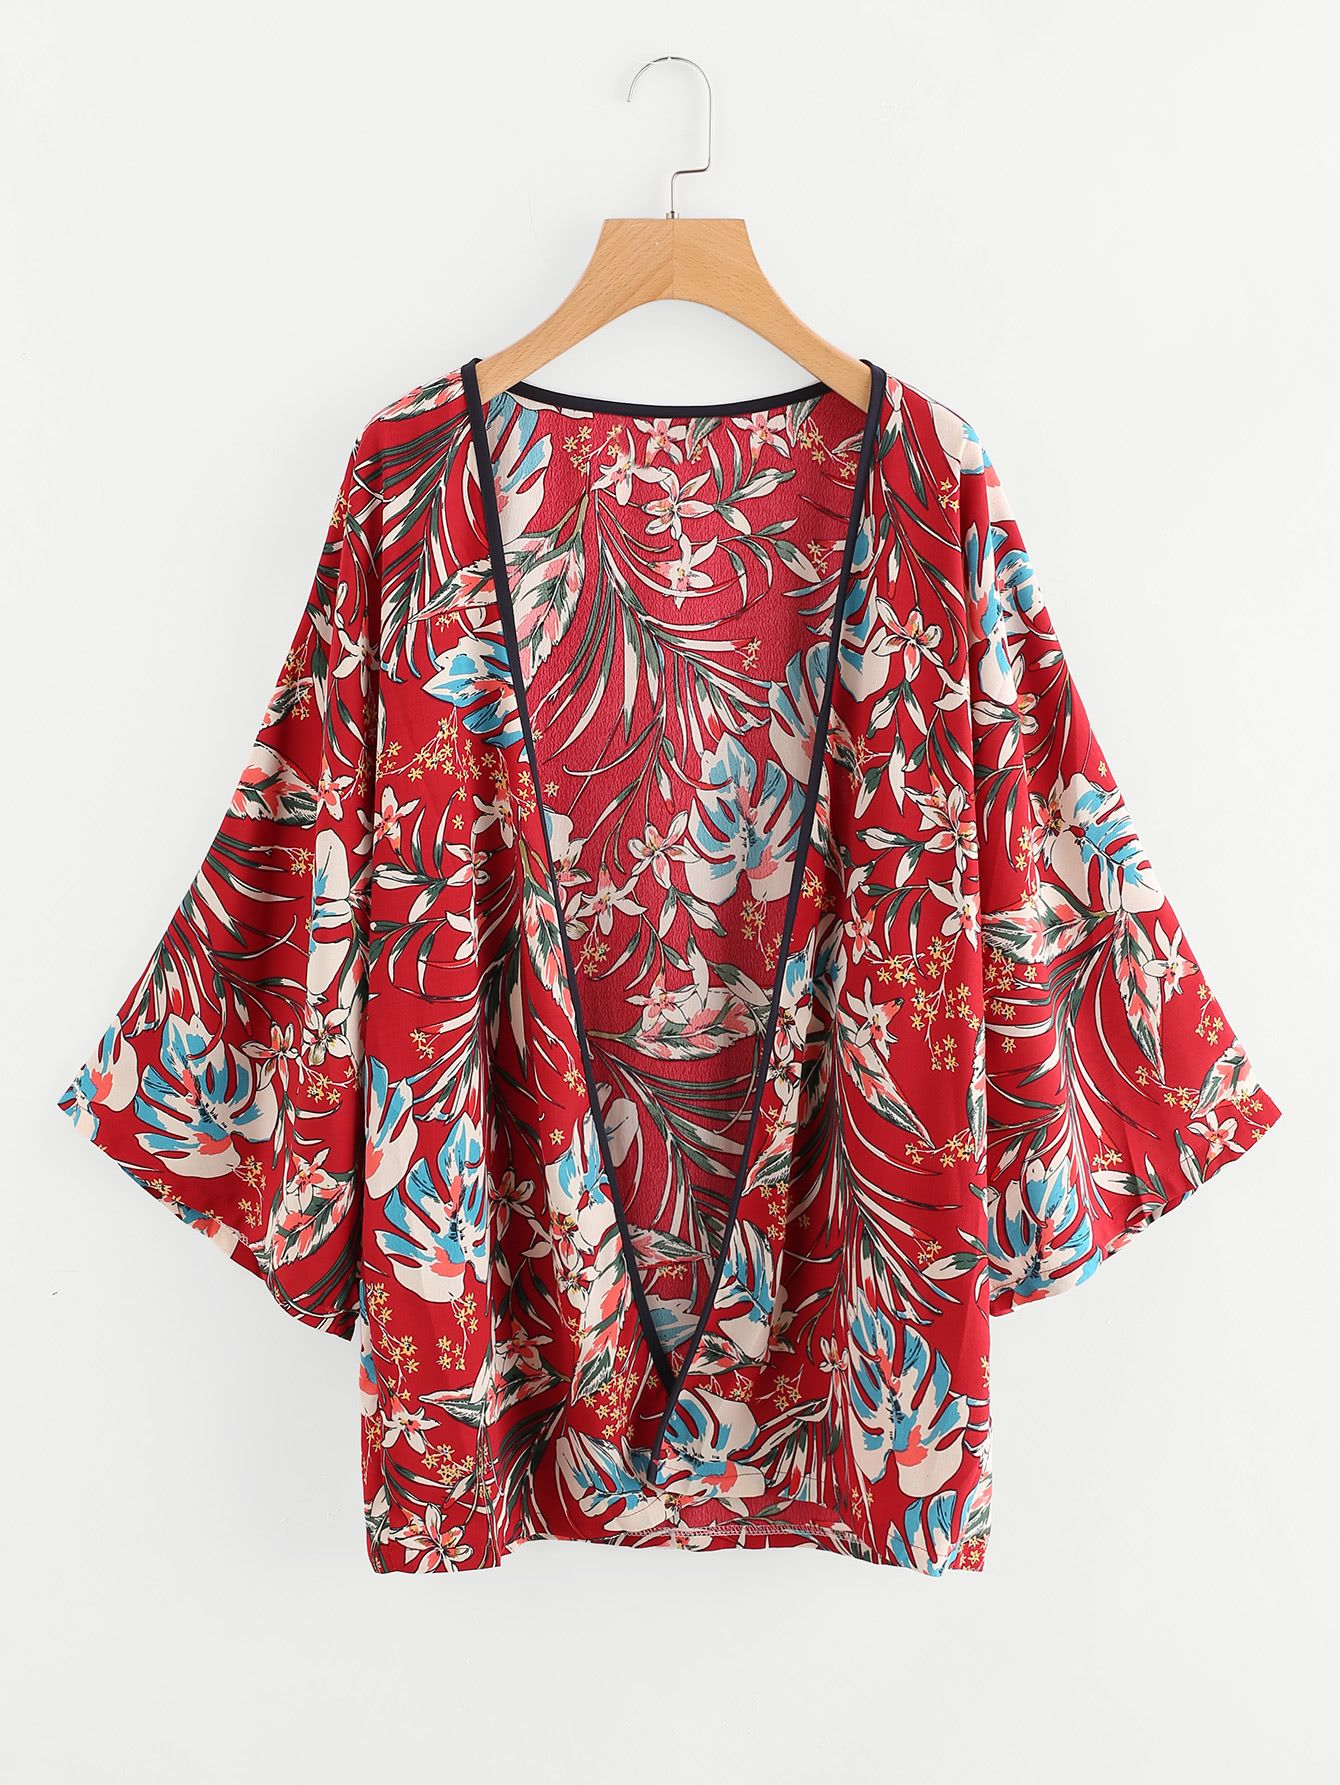 89fcb88e4e Shop Contrast Trim Botanical Print Kimono online. SheIn offers Contrast  Trim Botanical Print Kimono & more to fit your fashionable needs.